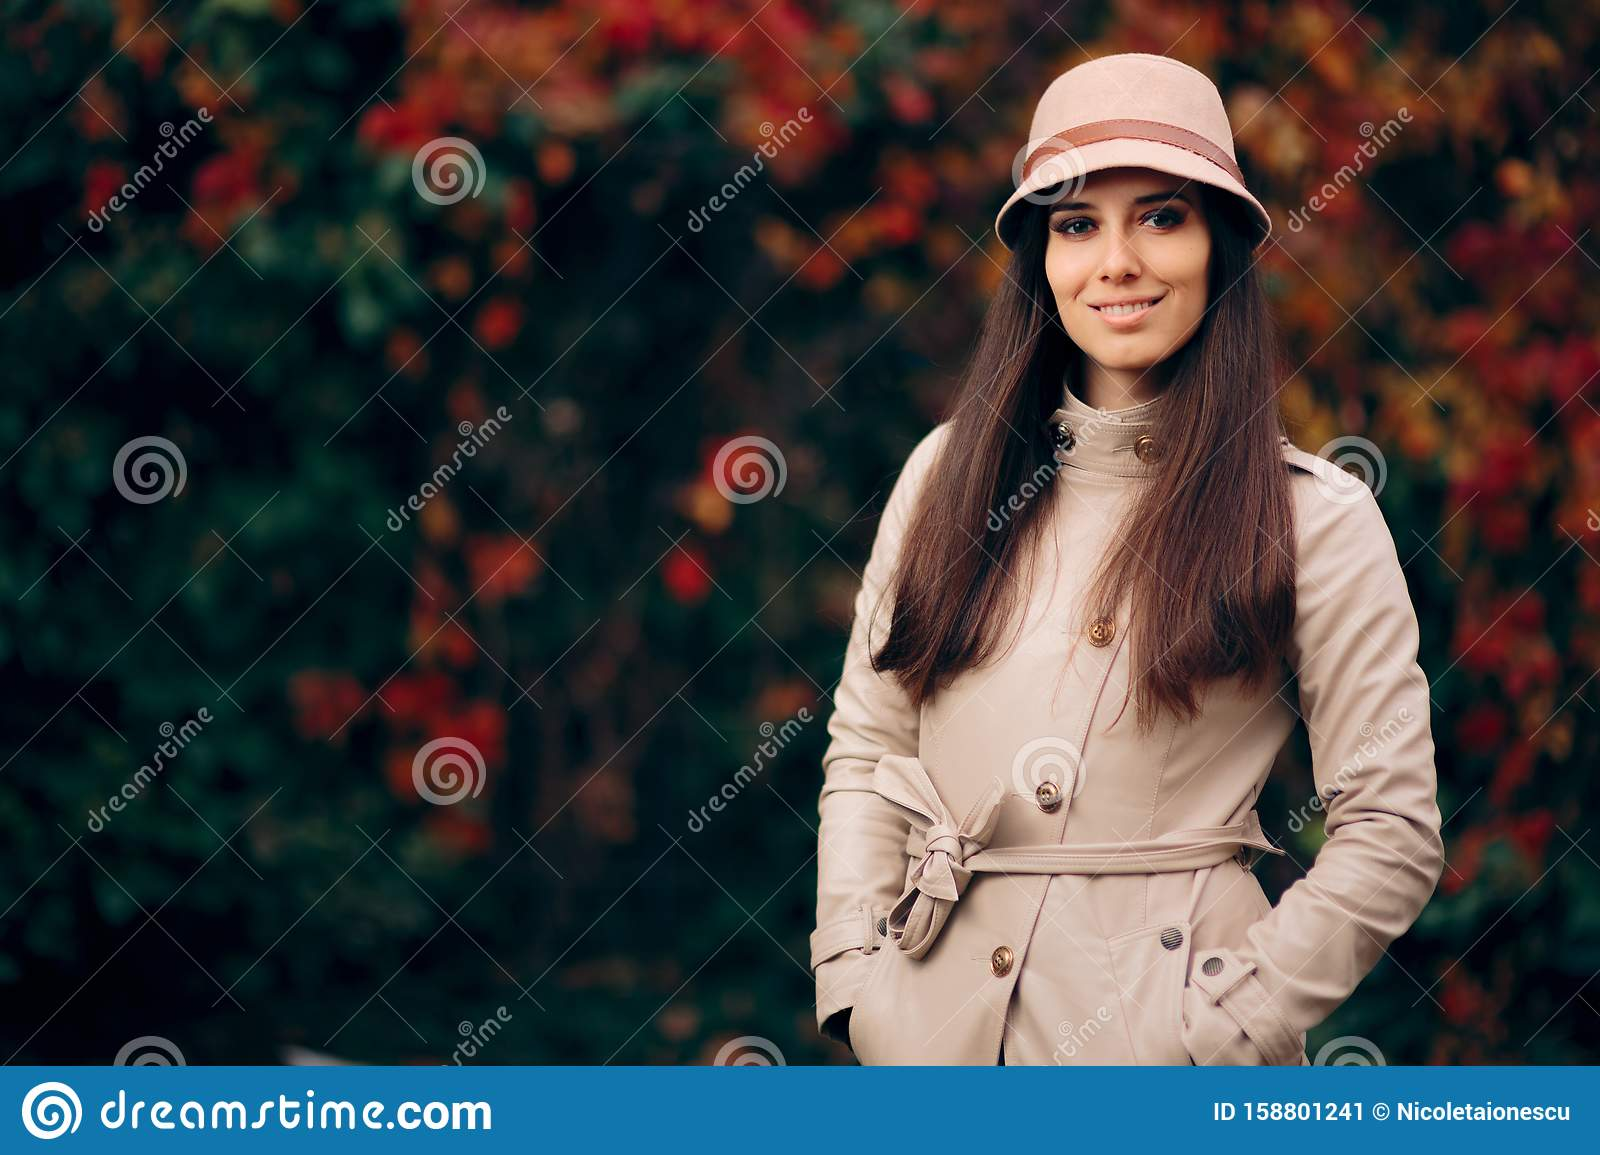 Woman Wearing Trench Coat and a Hat Fashion Portrait